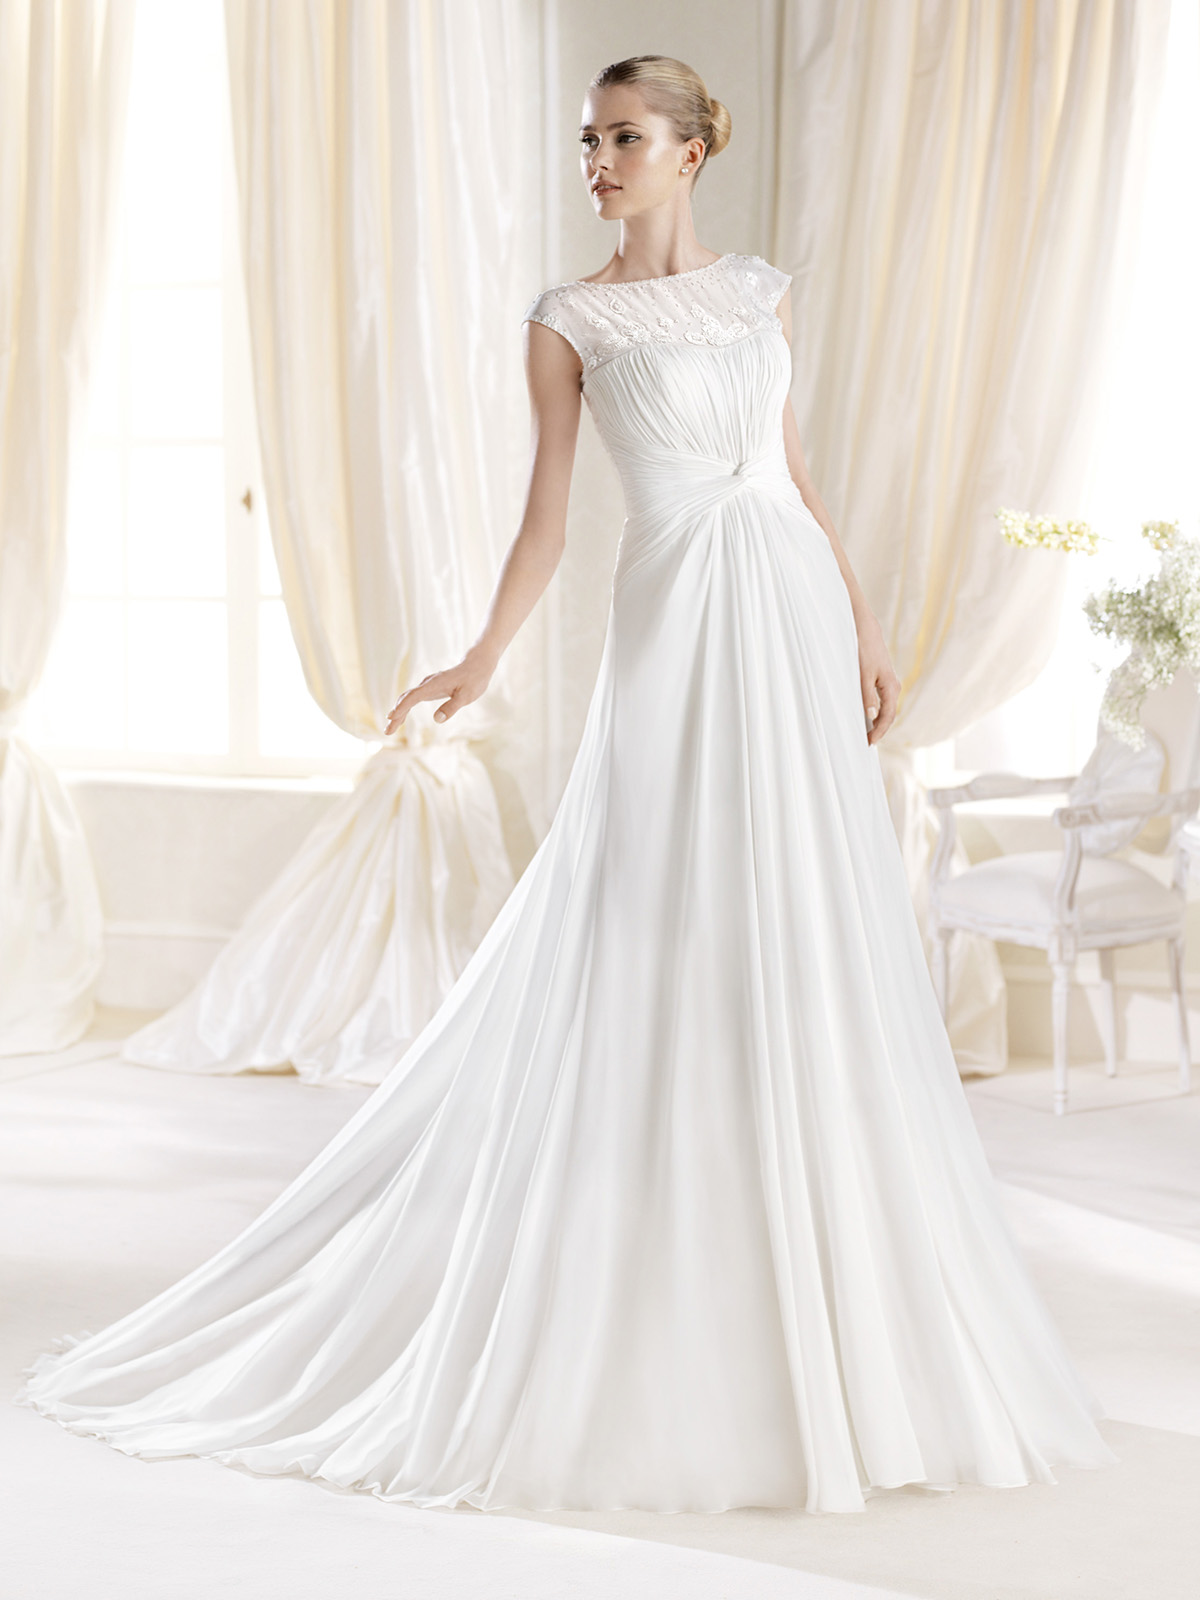 boat neck wedding dress with sleeves high neck 31 ideas about boat neck wedding dress ideas about boat neck wedding dress with sleeves high neck 31